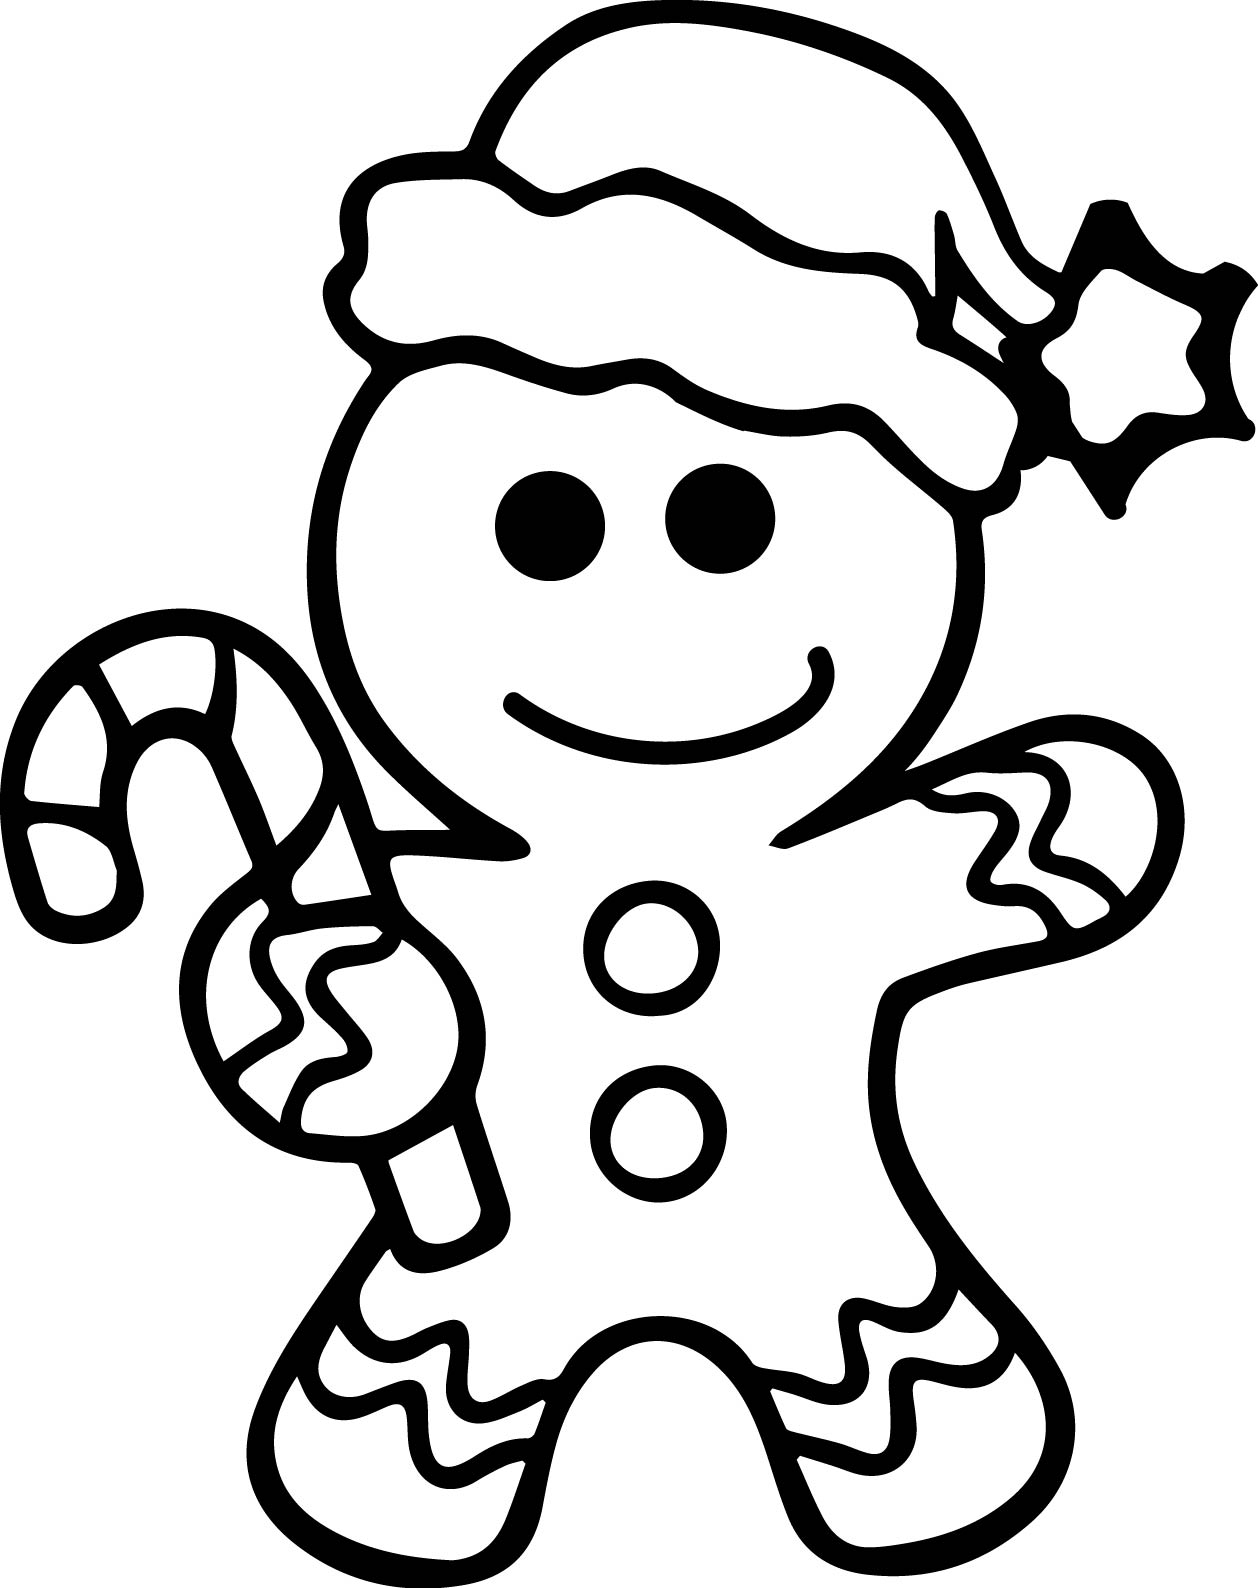 Gingerbread man coloring page for Gingerbread house coloring pages